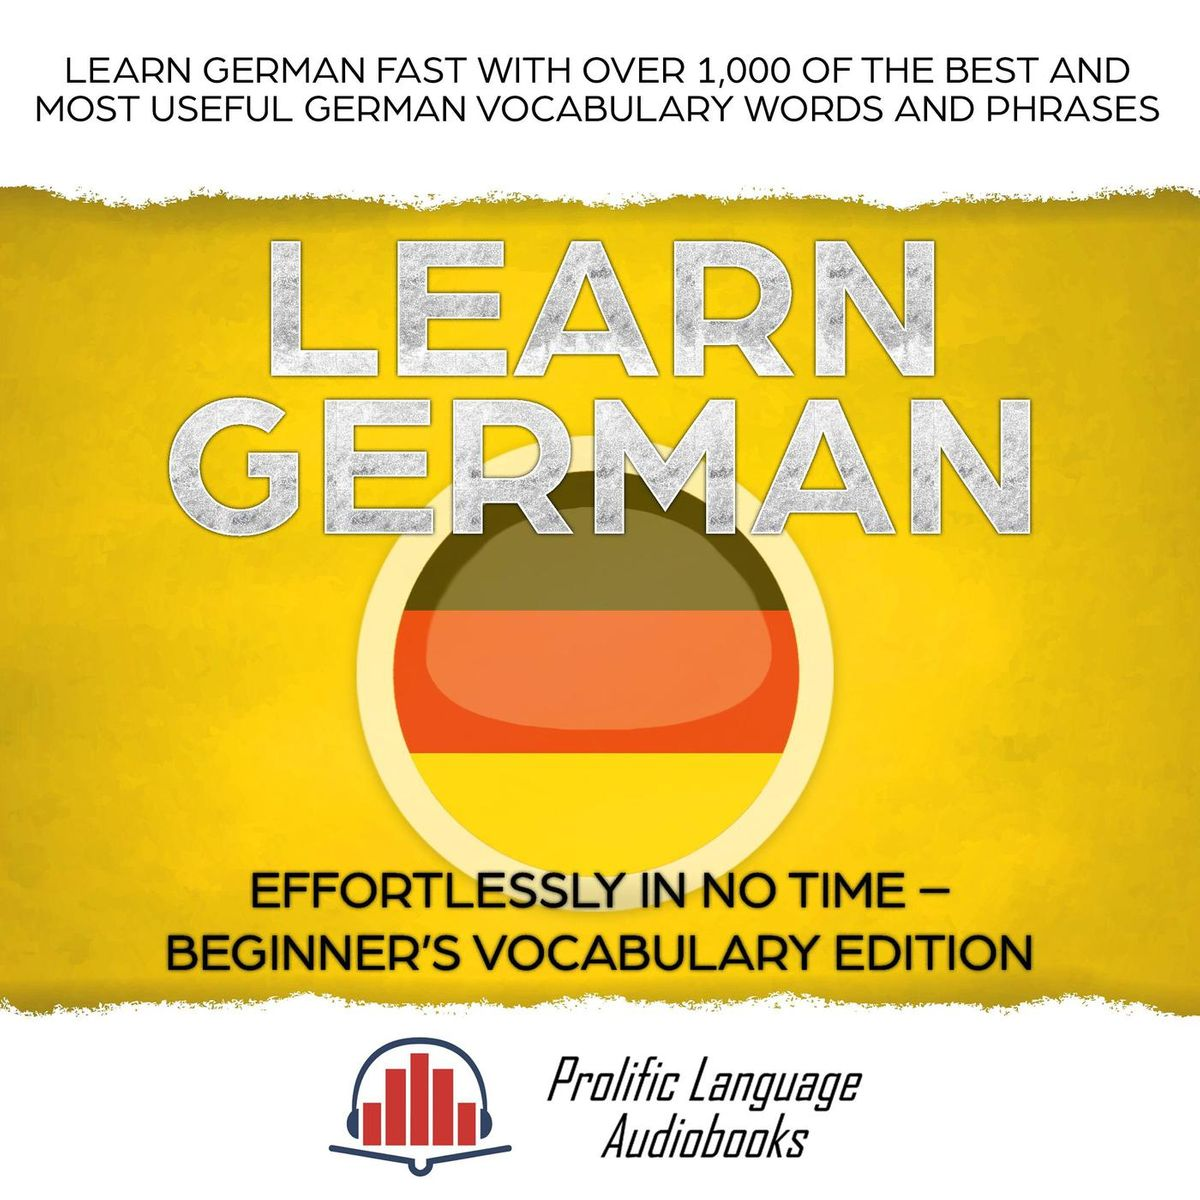 Learn German Effortlessly in No Time – Beginner's Vocabulary and German Phrases Edition: Learn German FAST with Over 1,000 of the Best and Most Useful German Vocabulary Words and Phrases - eBook